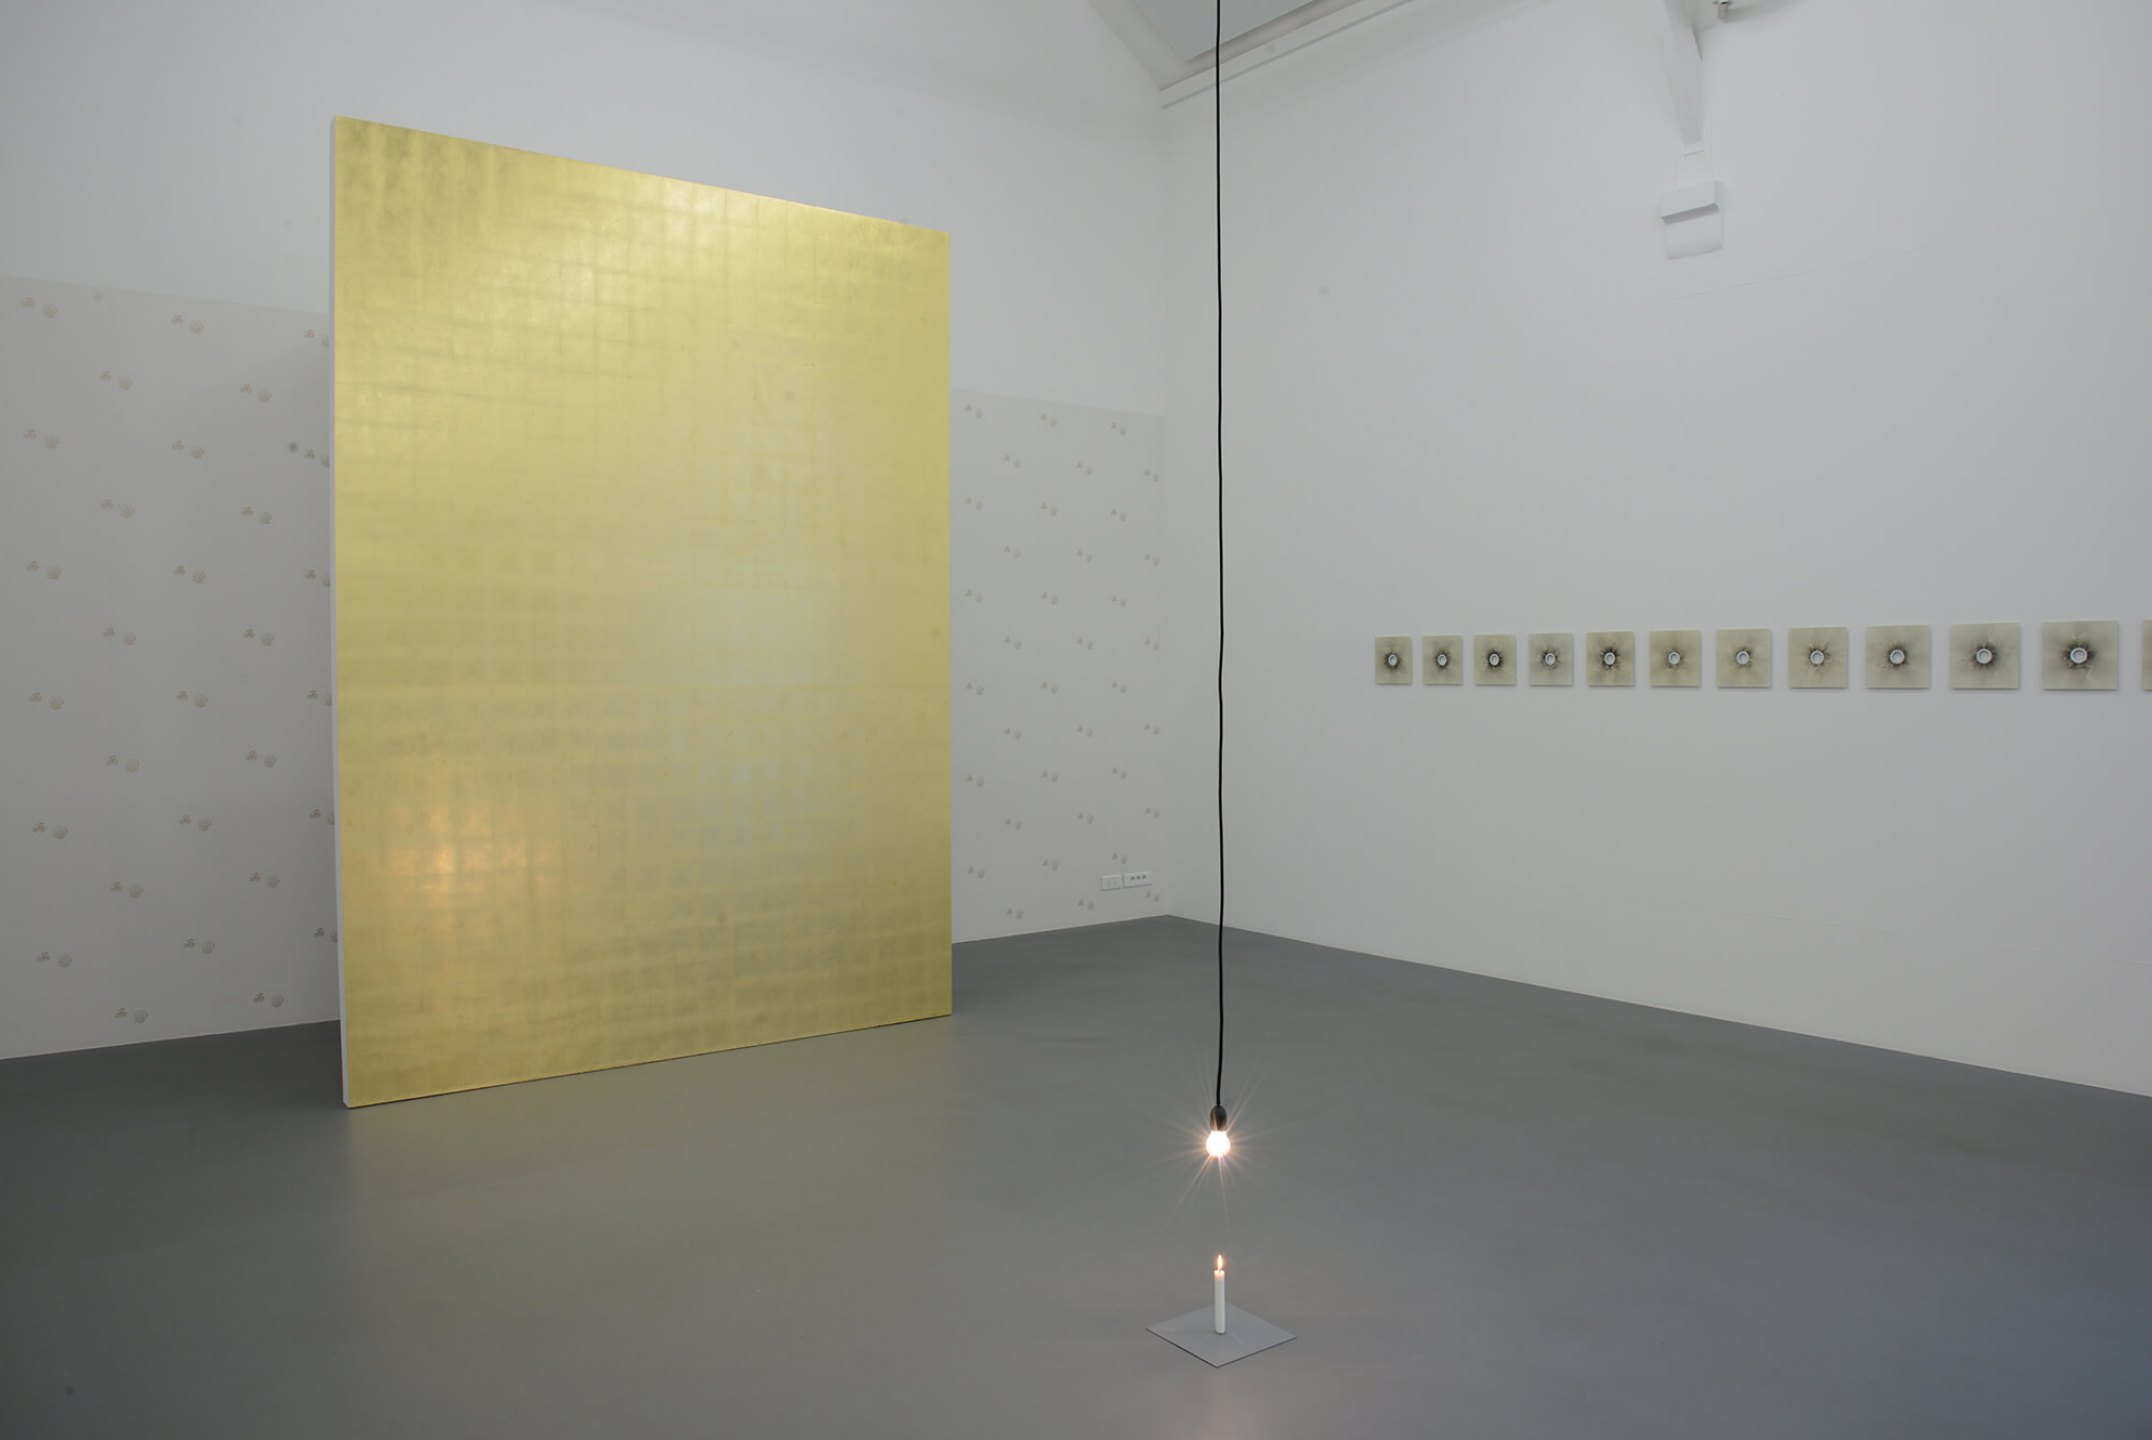 Runo Lagomarsino,<em>They Watched Us For a Very Long Time,</em>La Criée Centre for Contemporary Art,Rennes, 2015 - Mendes Wood DM